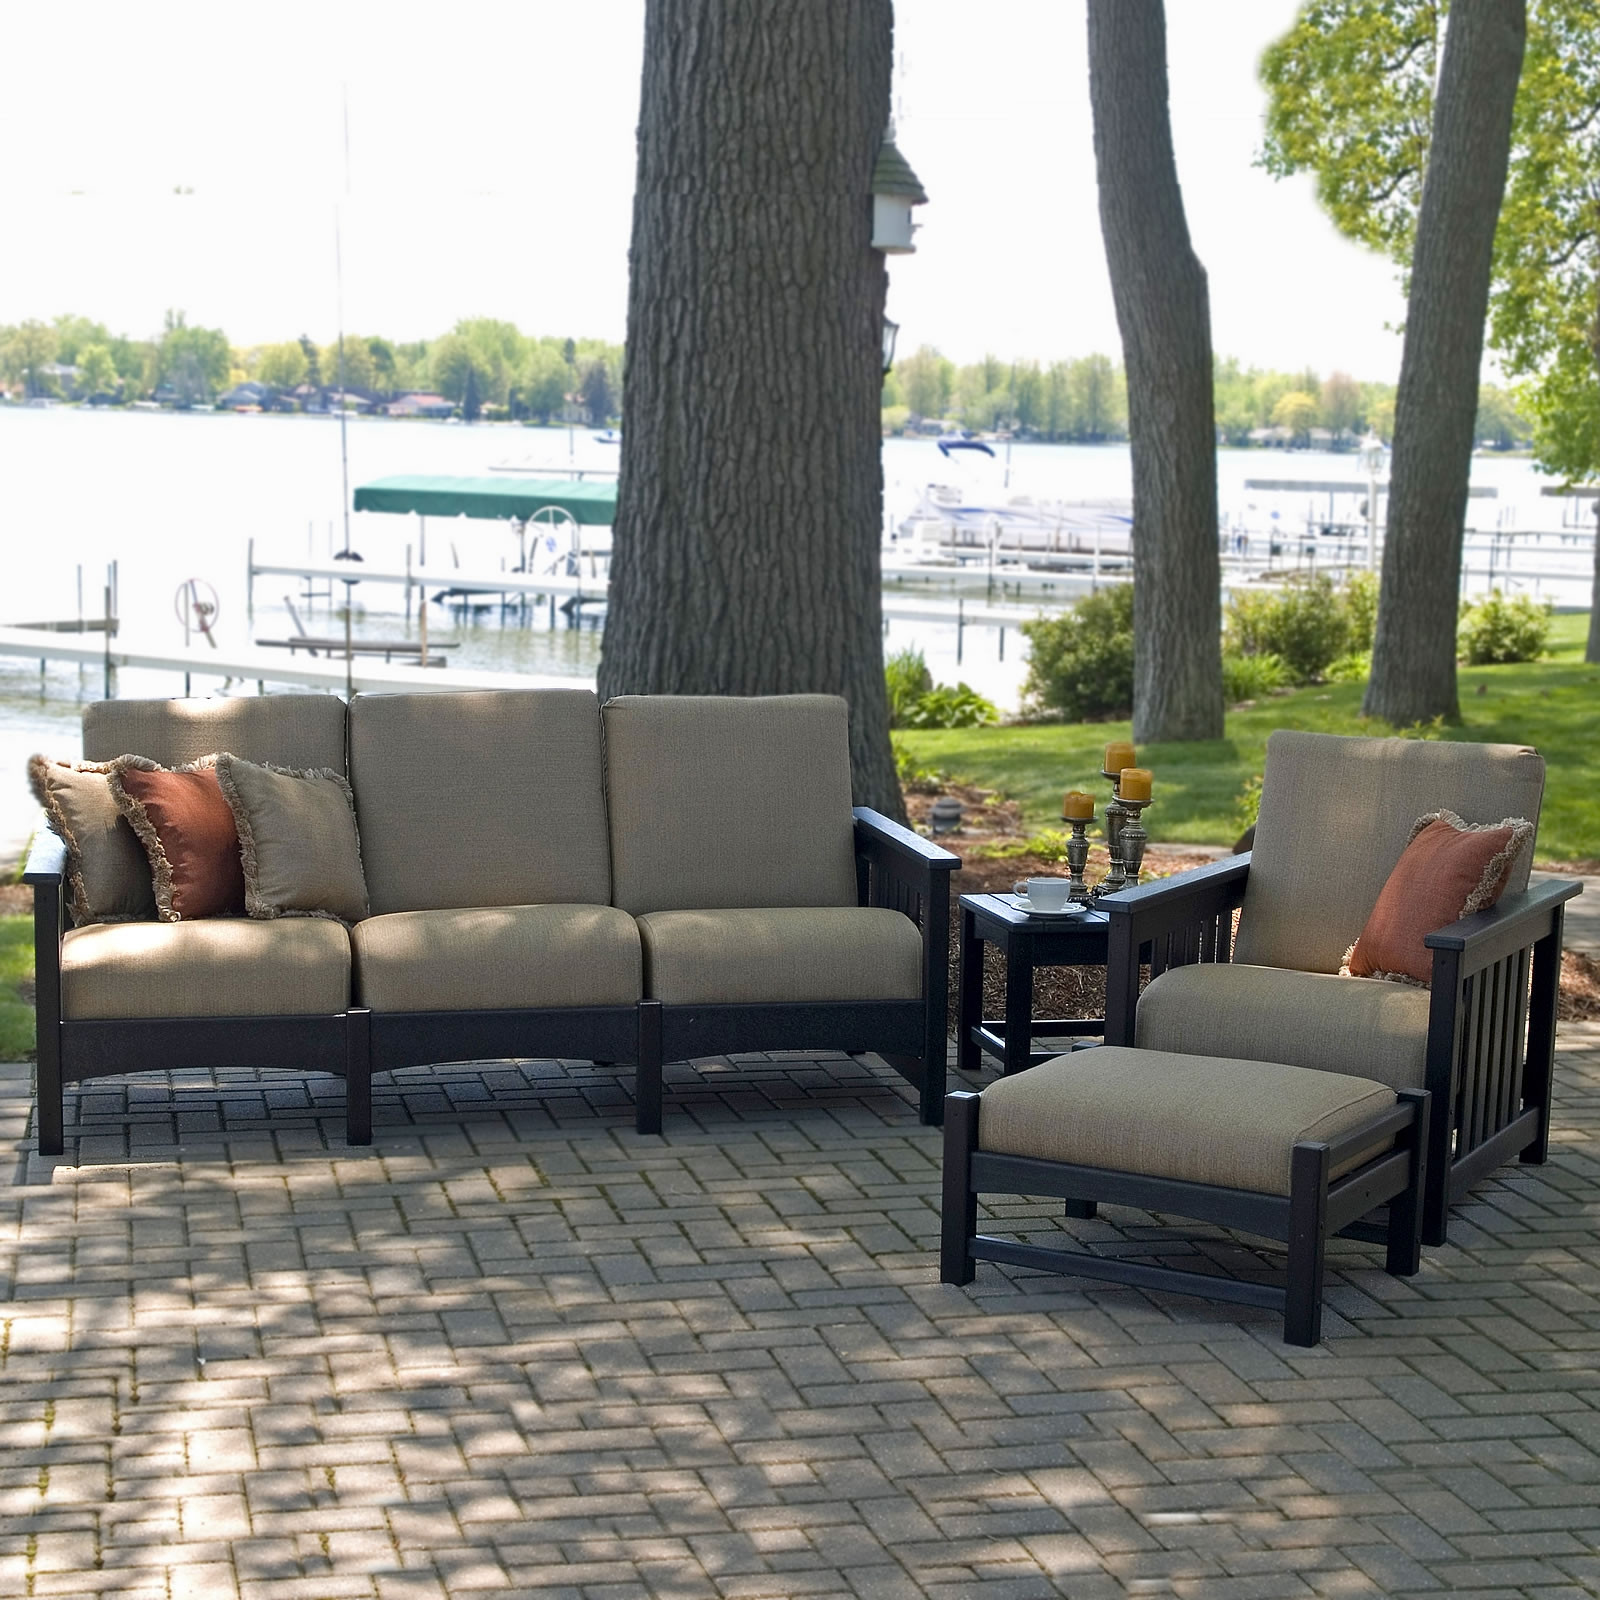 POLYWOOD® 4 Piece Outdoor Living Patio Set - Mission ... on Outdoor Living Set id=28705